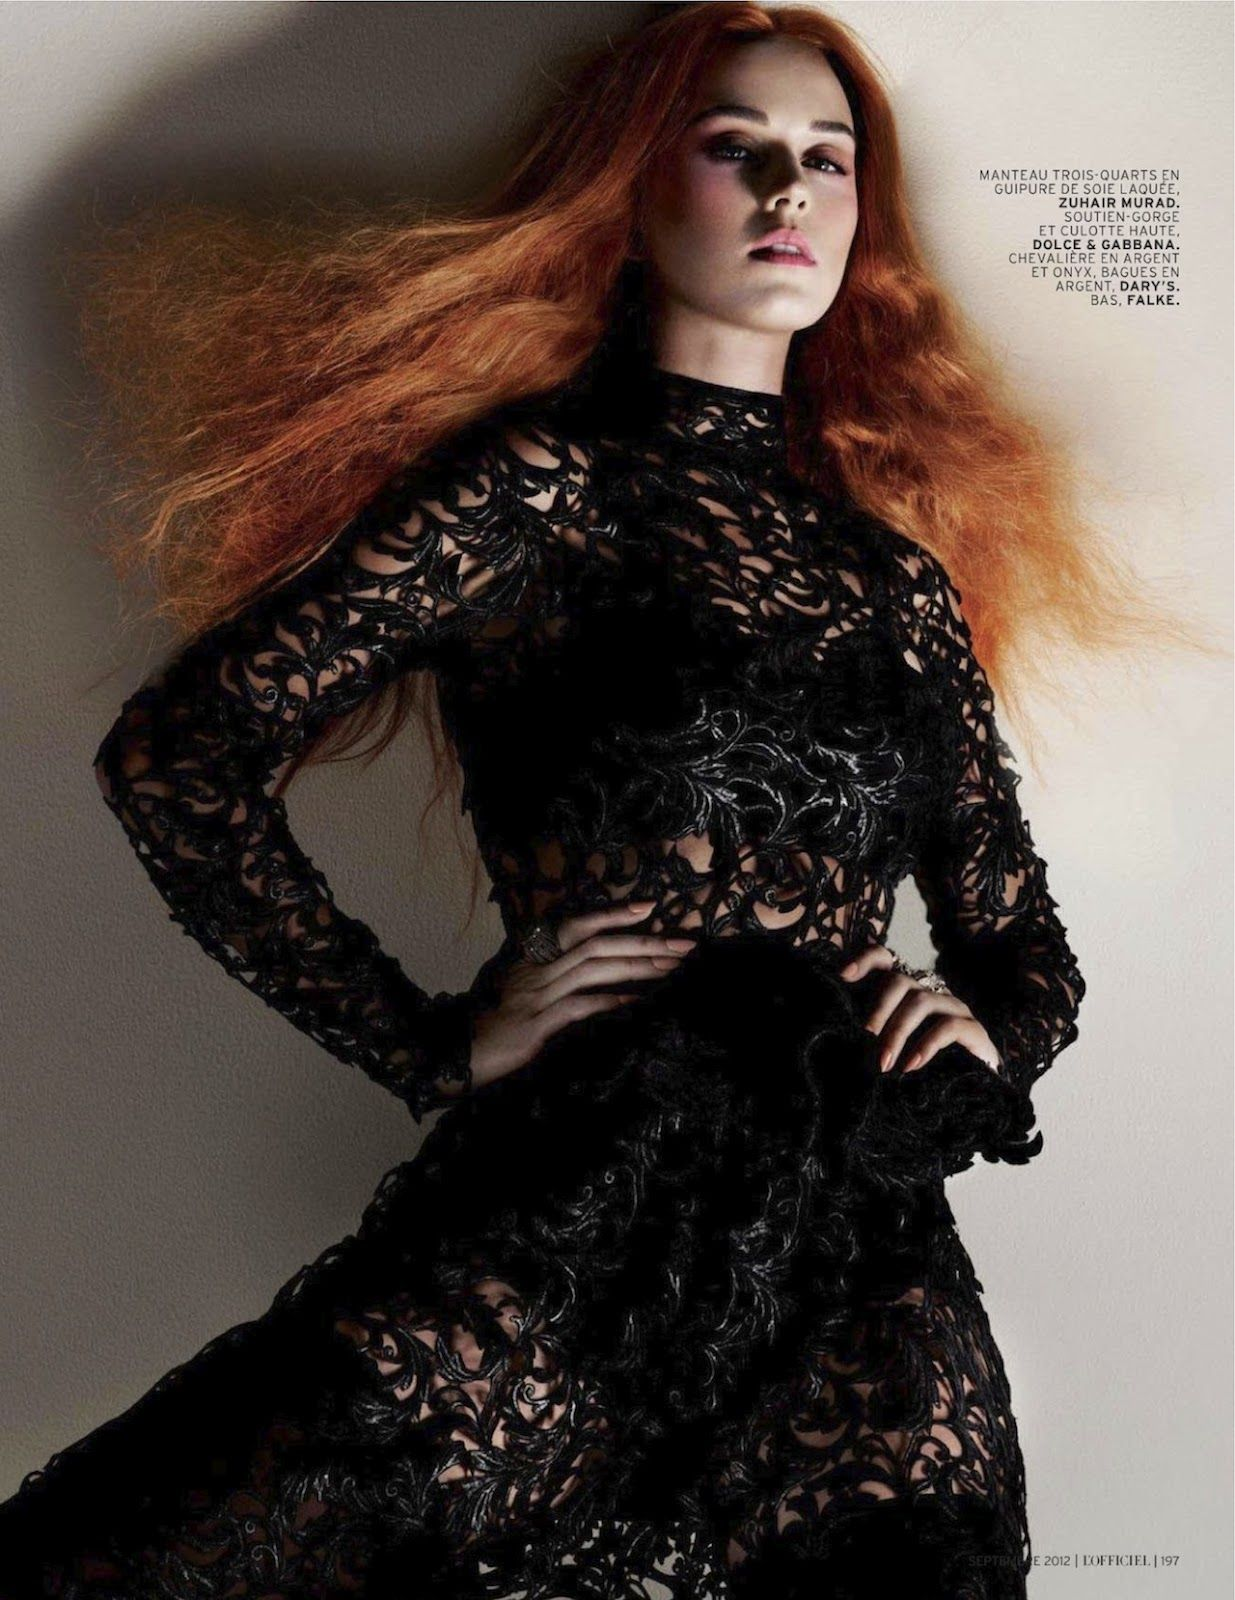 visual optimism; daily fashion fix.: hello katy: katy perry by cuneyt akeroglu for l'officiel paris september 2012